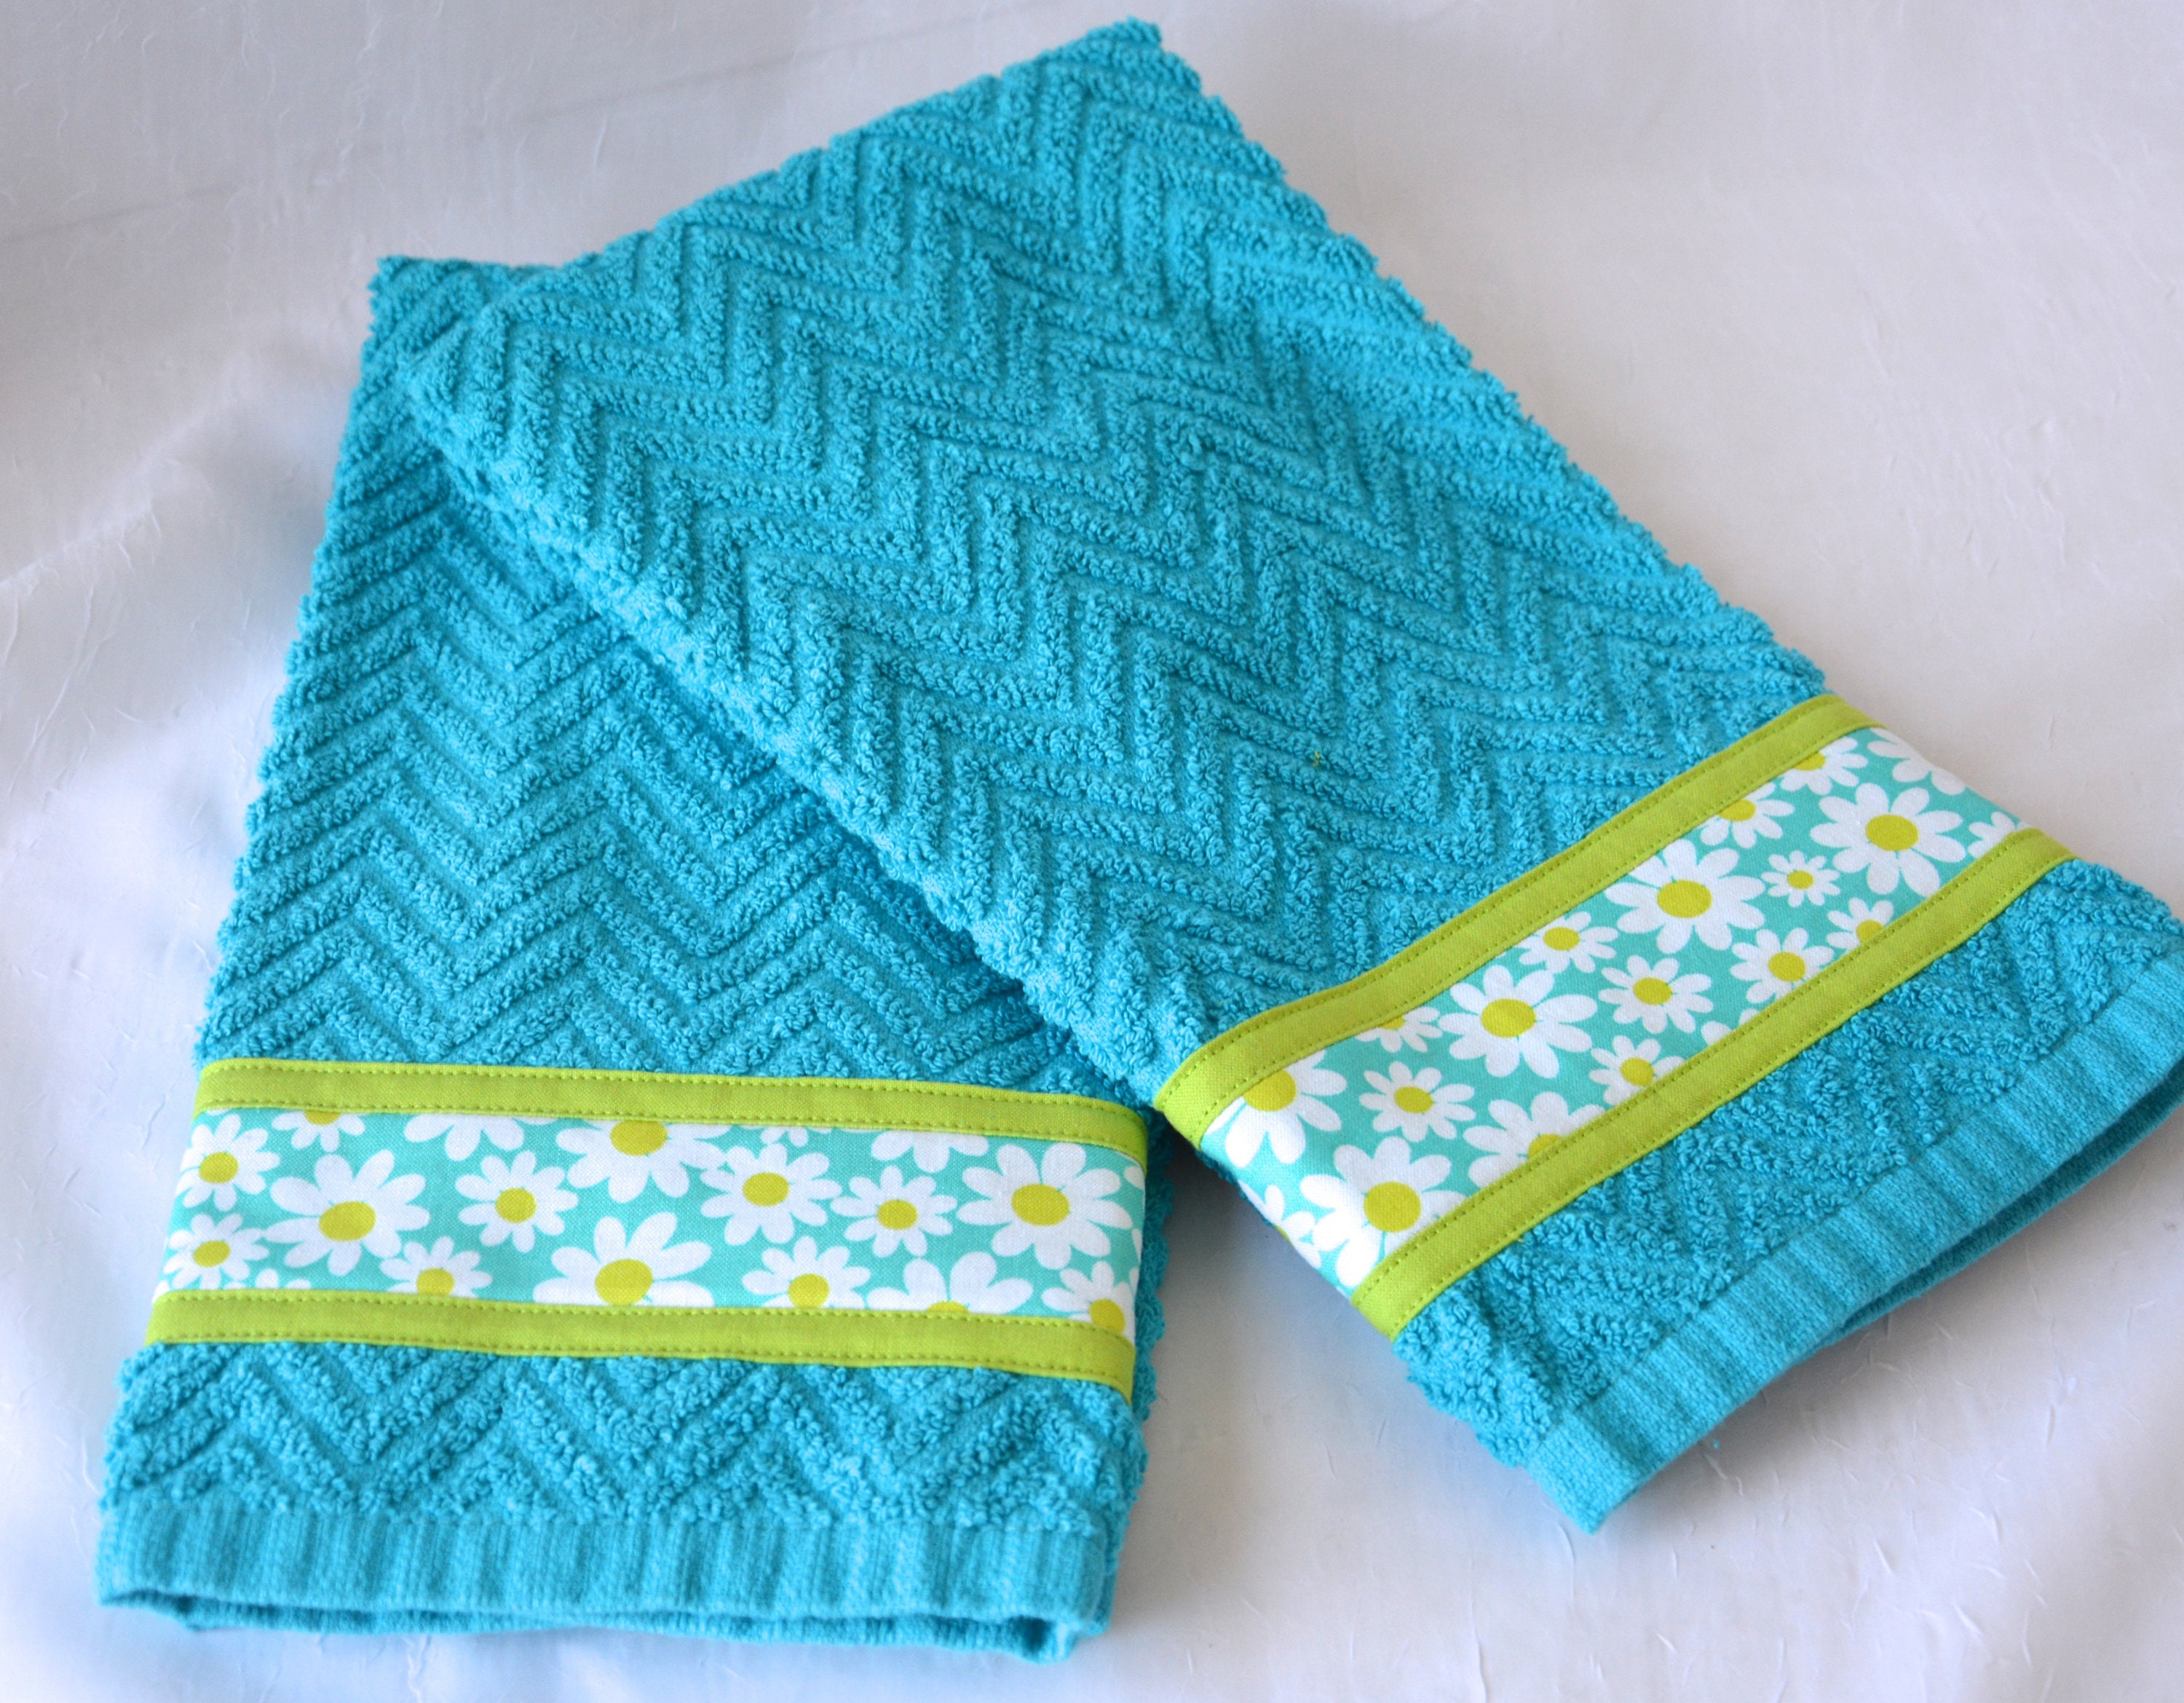 Blue Cottage Towels, 2 Hand Decorated Kitchen Towels, Set of Two